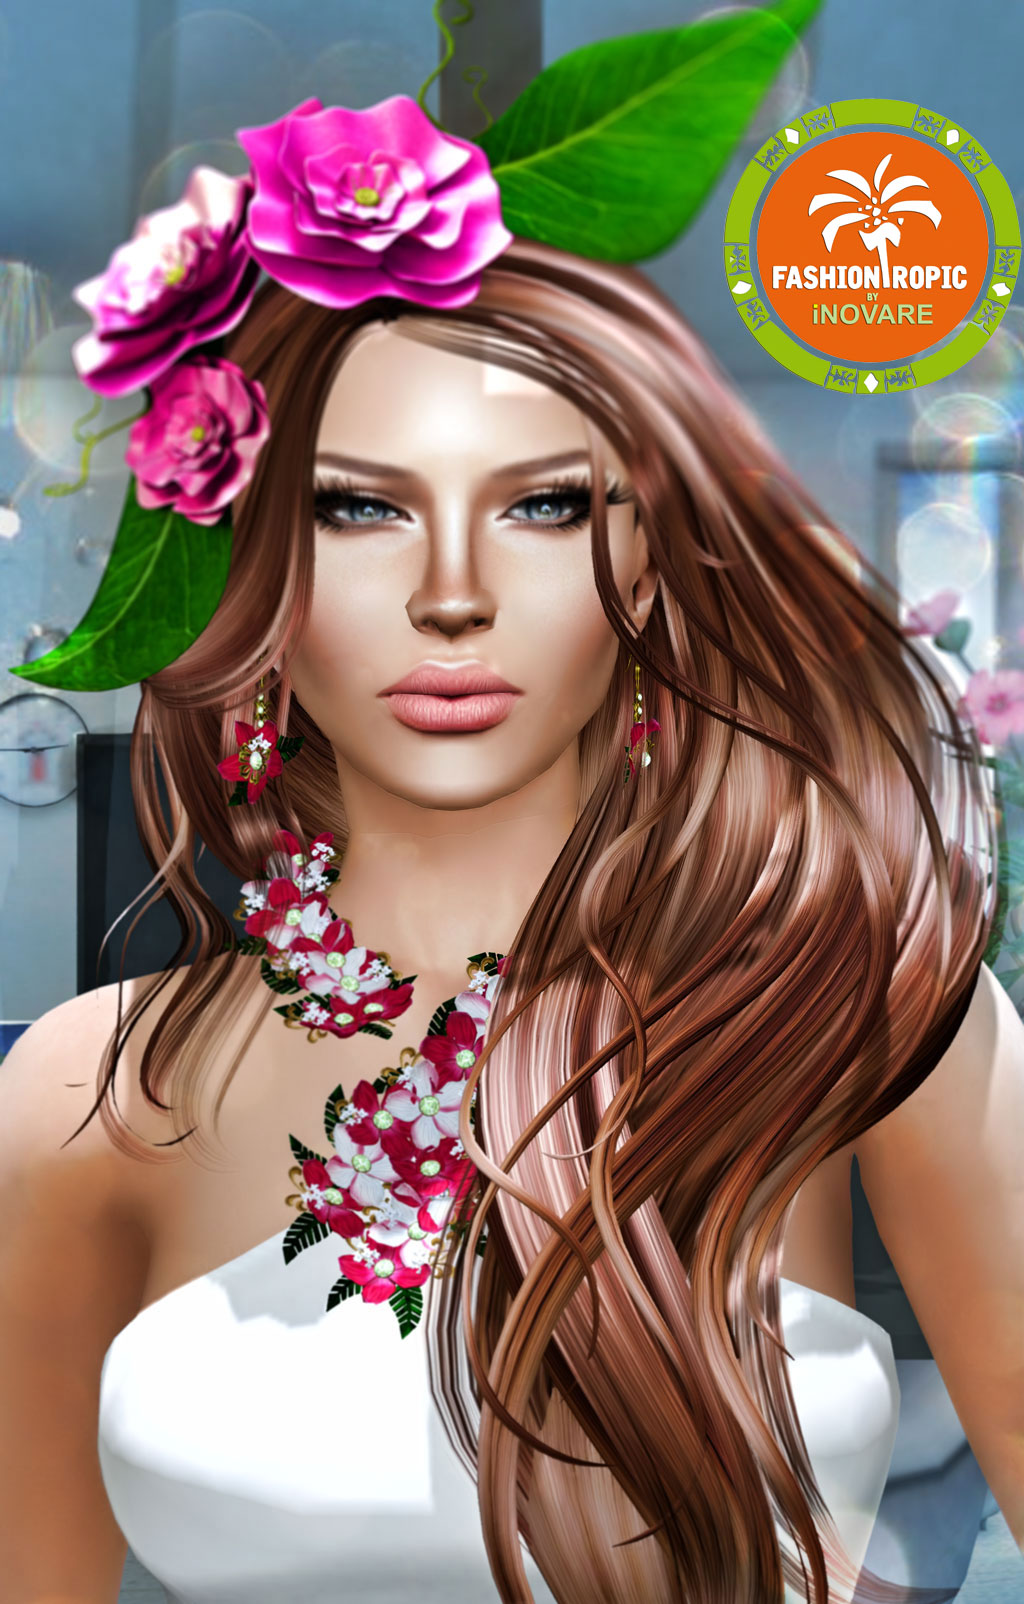 With flowers in her hair purrys blog liliah hair fair starts july 11th skin wow skins v2 fatma bronze black dot event makeup lips deesses boutique light skins lipstick izmirmasajfo